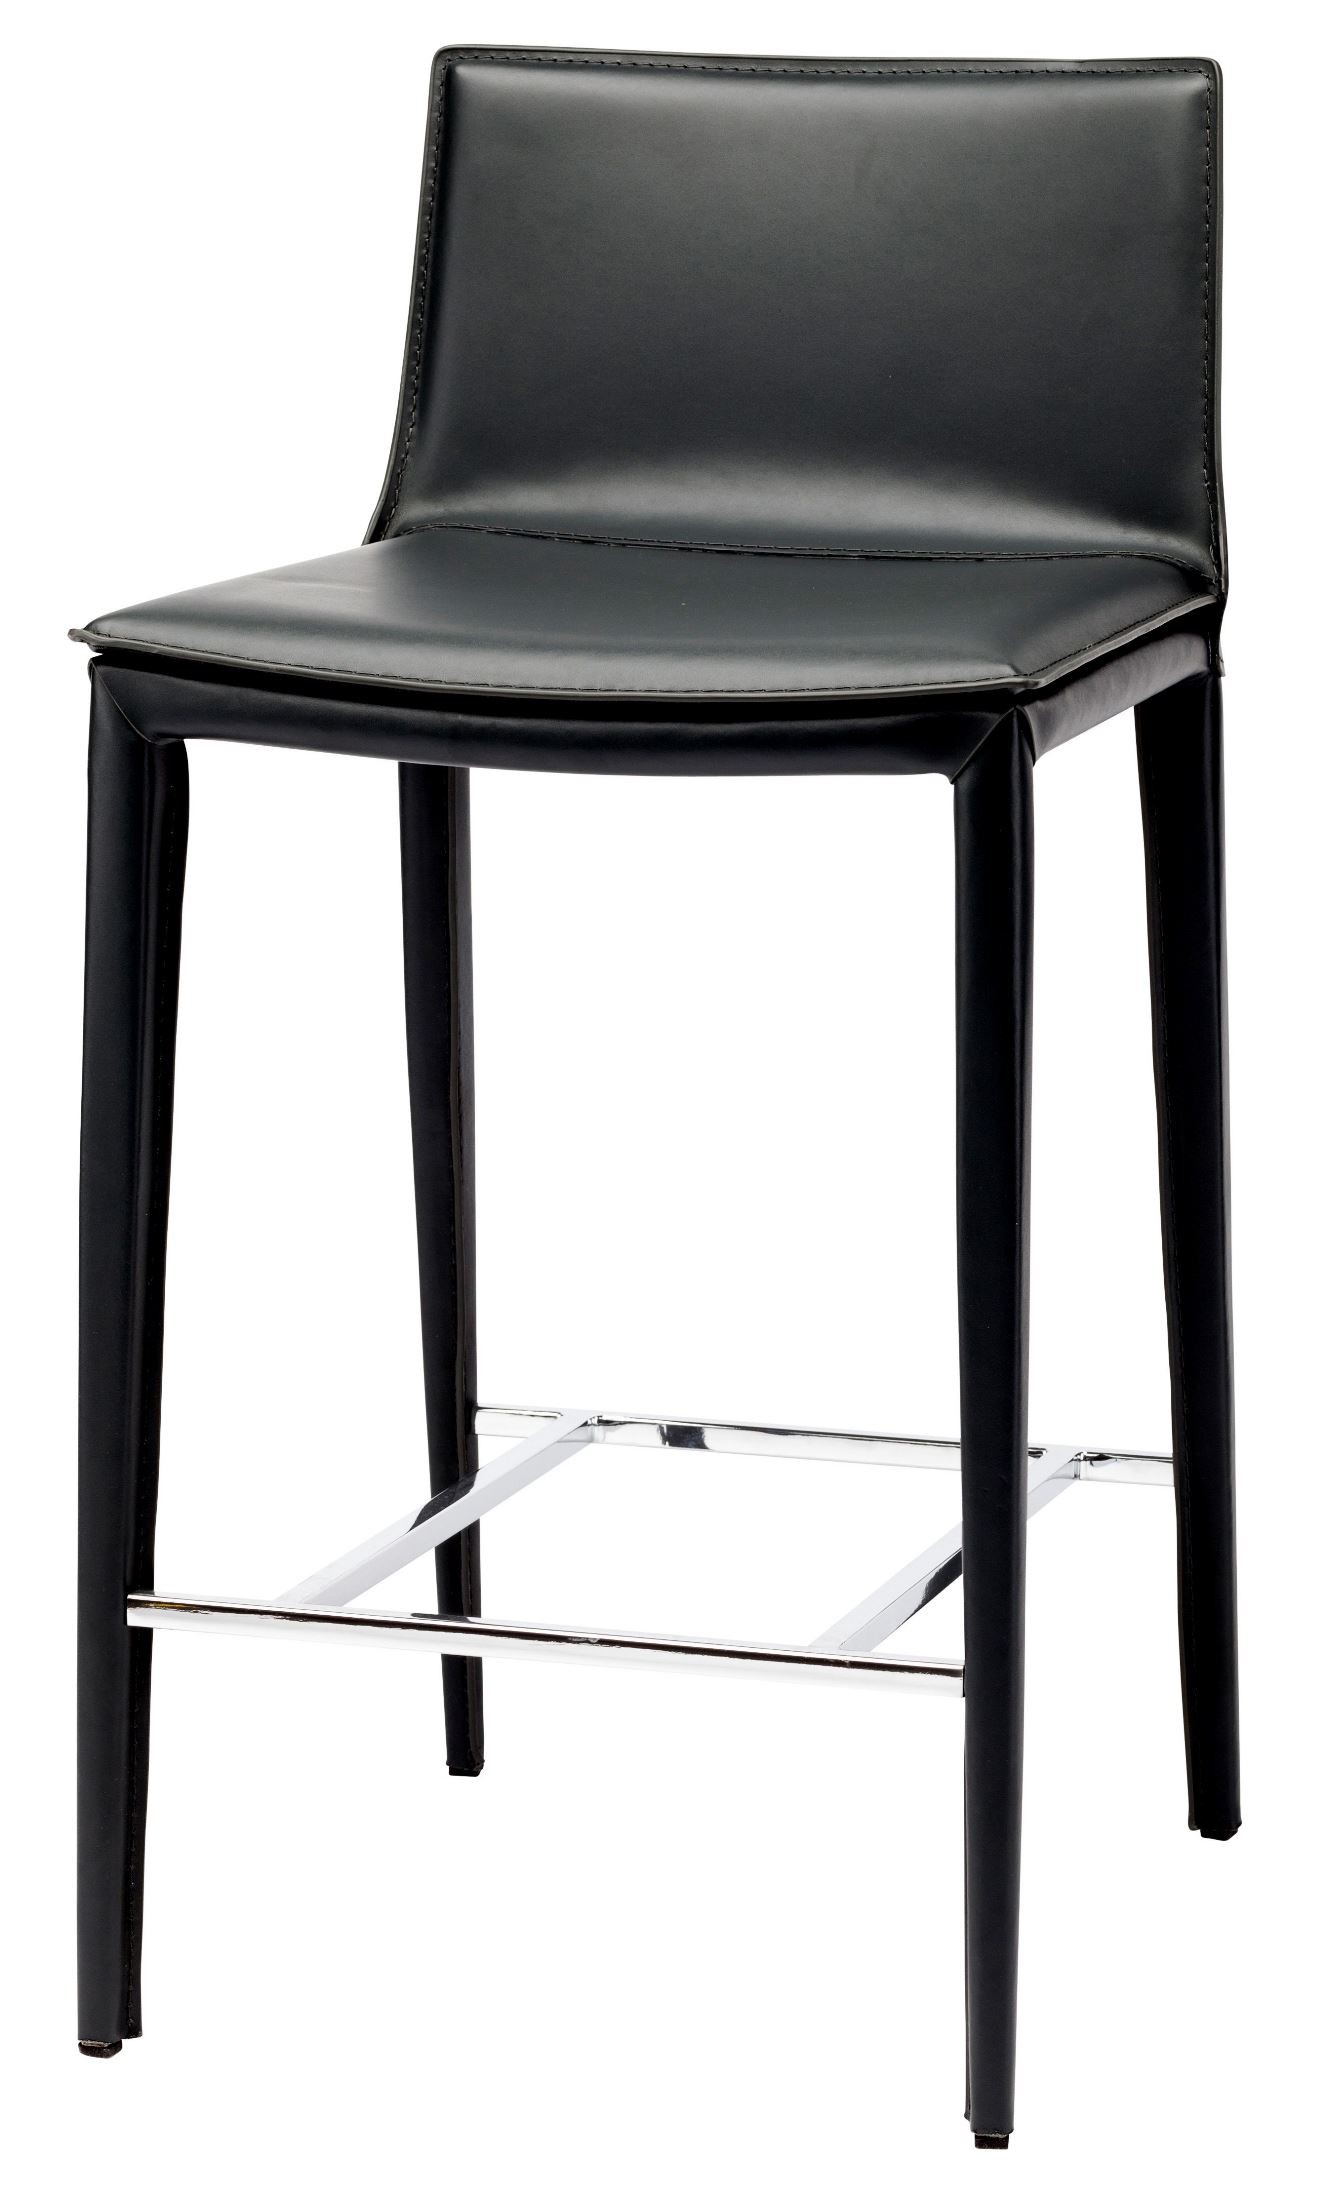 Palma Black Leather Counter Stool From Nuevo Coleman